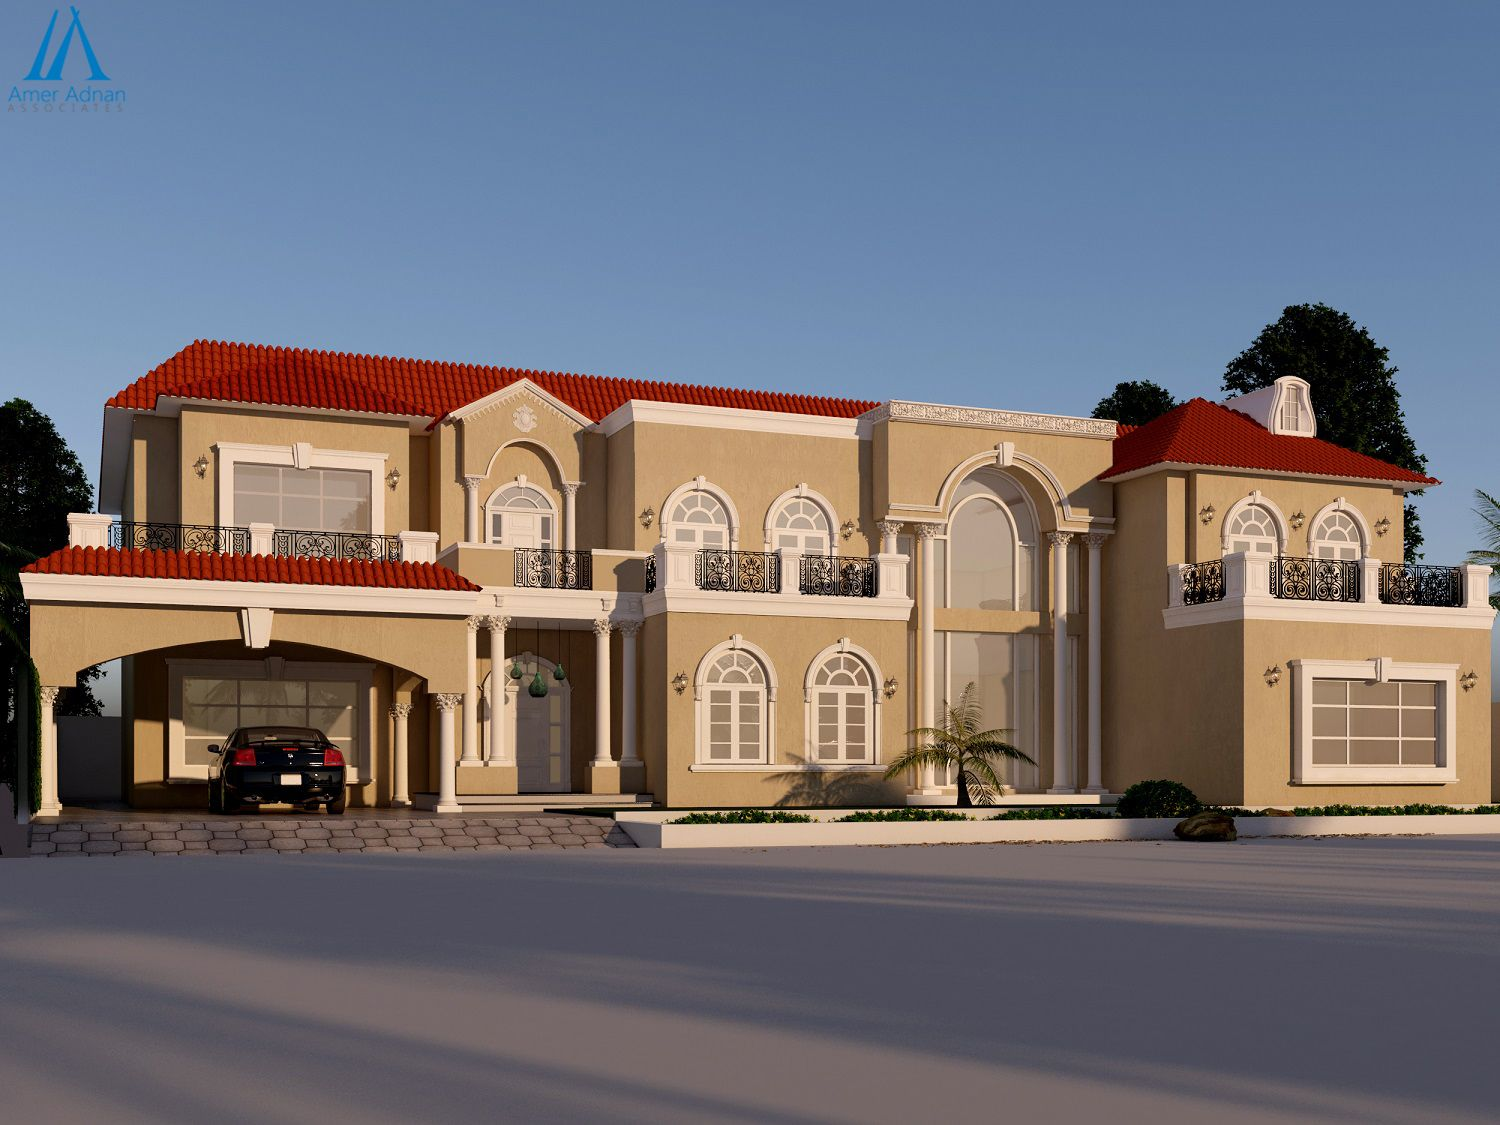 front elevation design ideateam aaa for your dream home